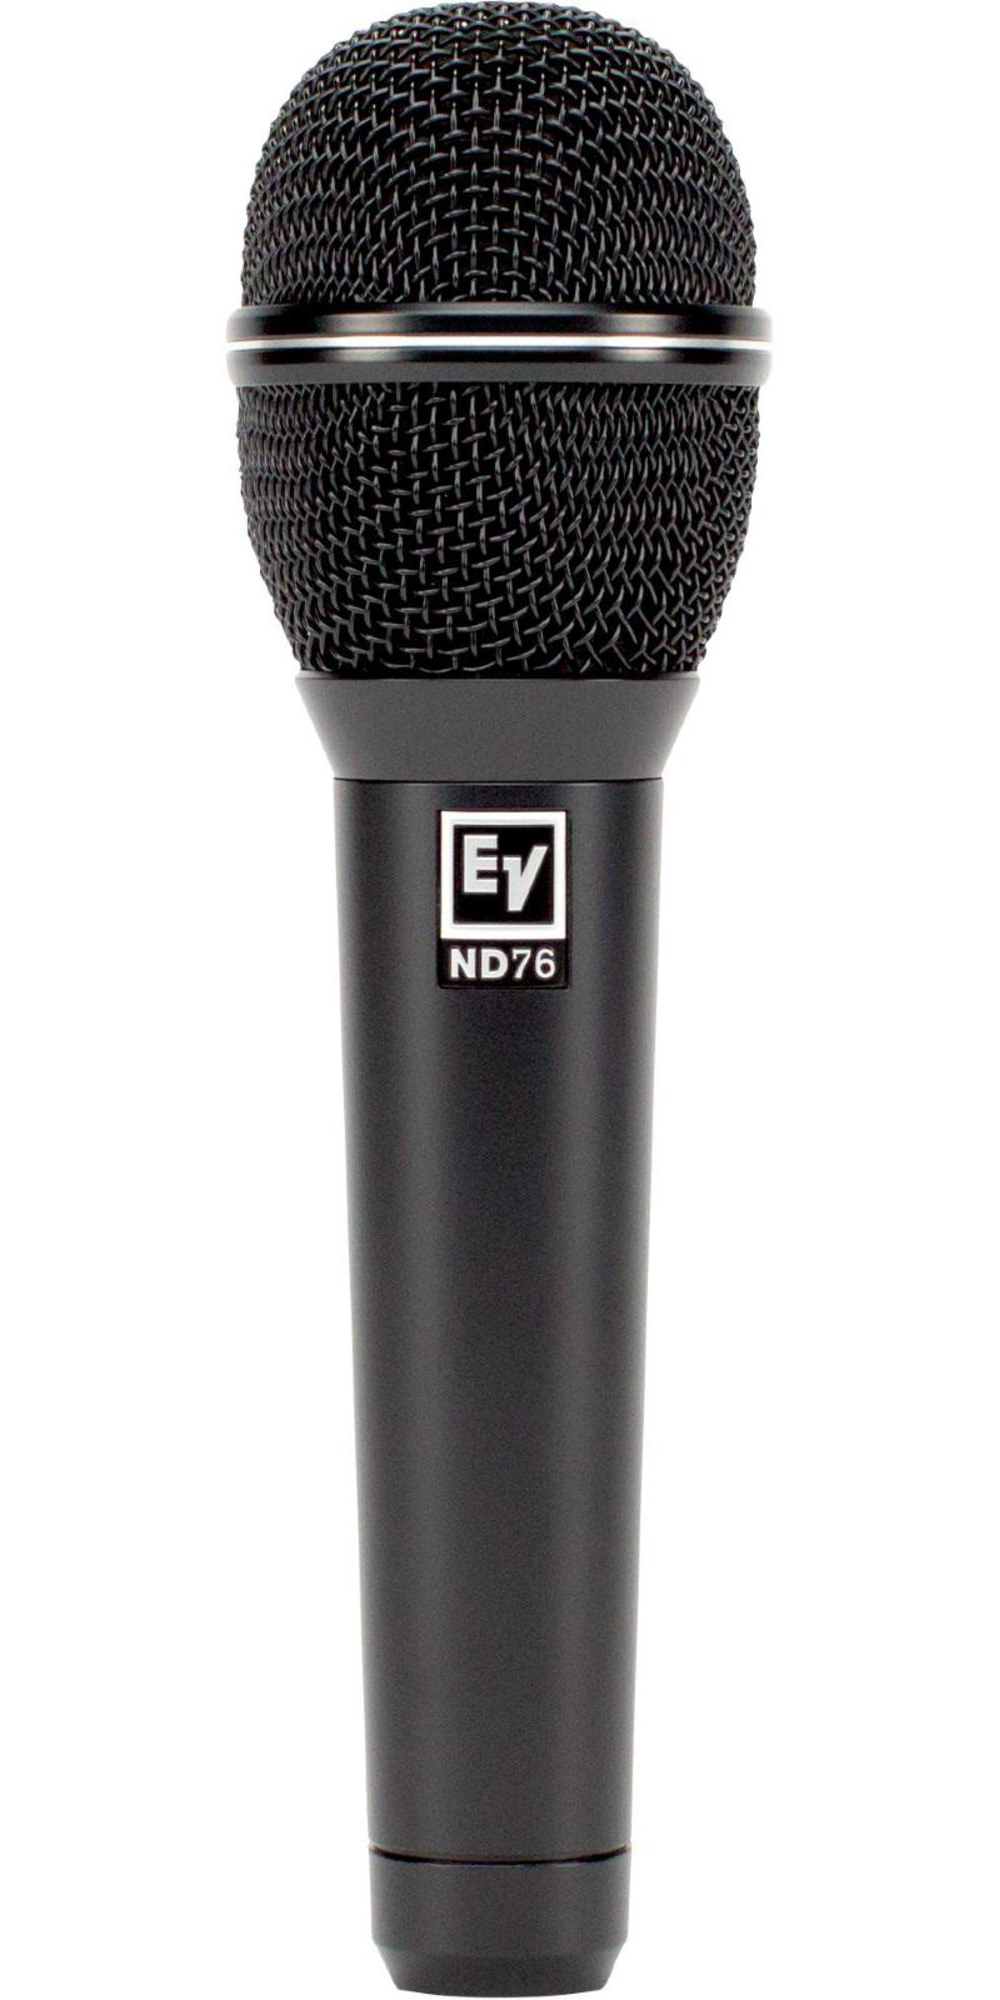 Electro-Voice ND76 Dynamic Cardioid Vocal Microphone by Electro-Voice